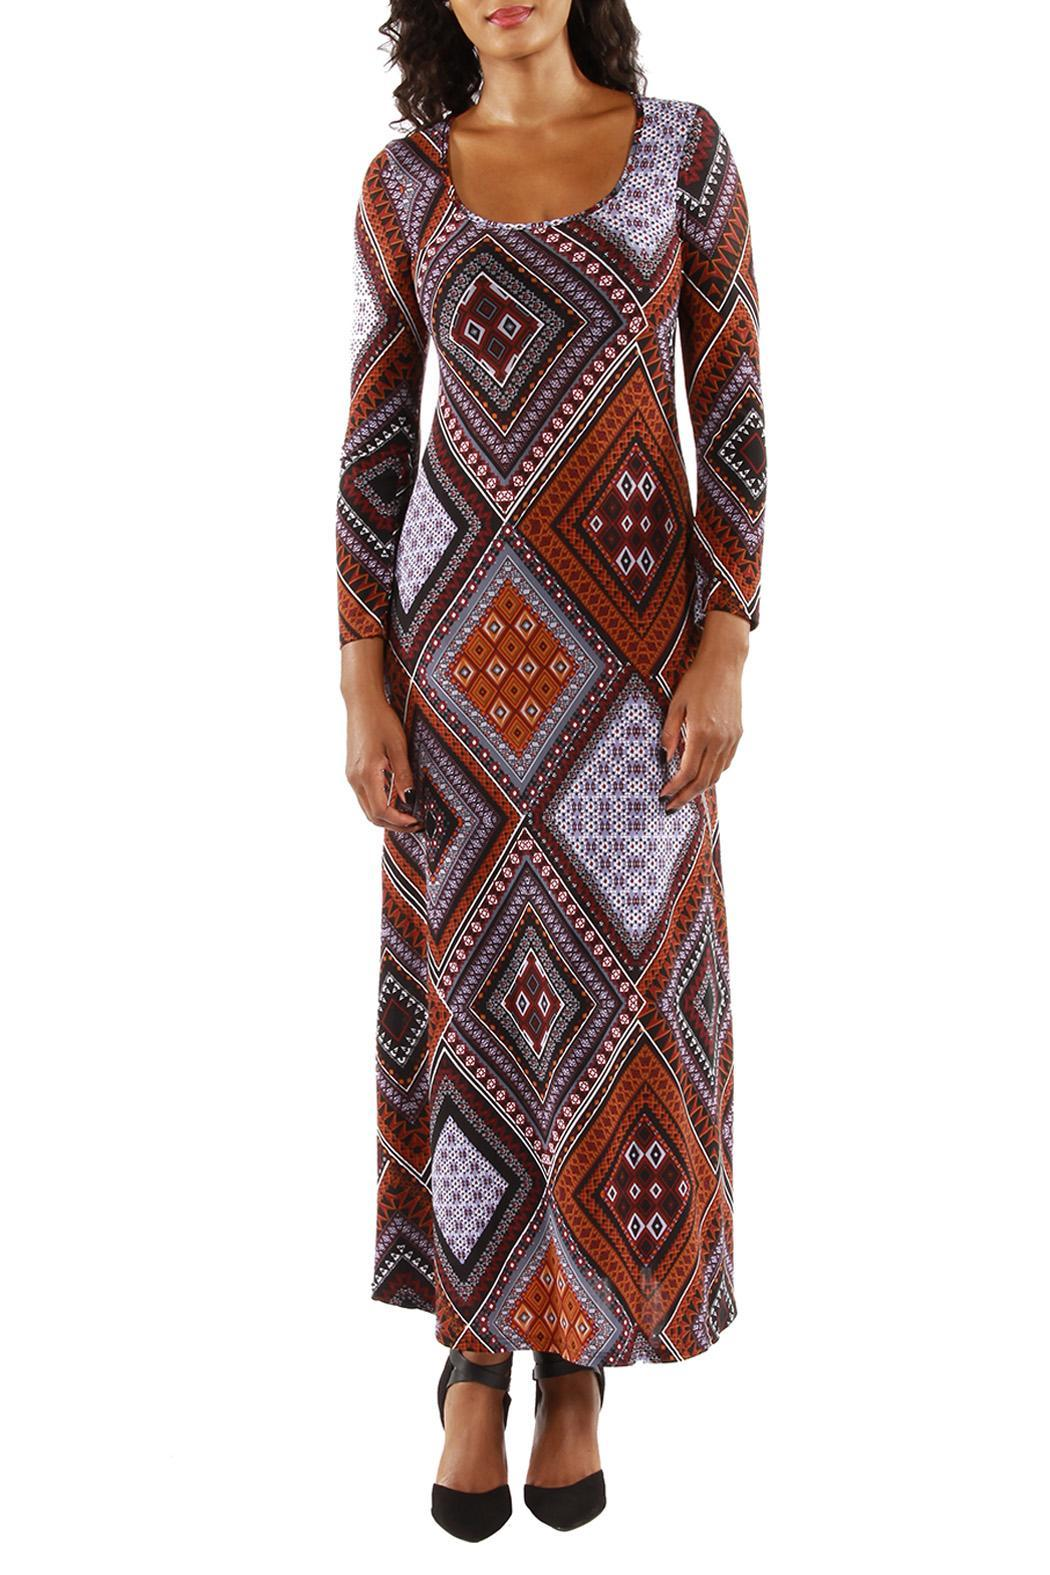 24/7 Comfort Apparel Patterned Maxi Dress from California by The ...